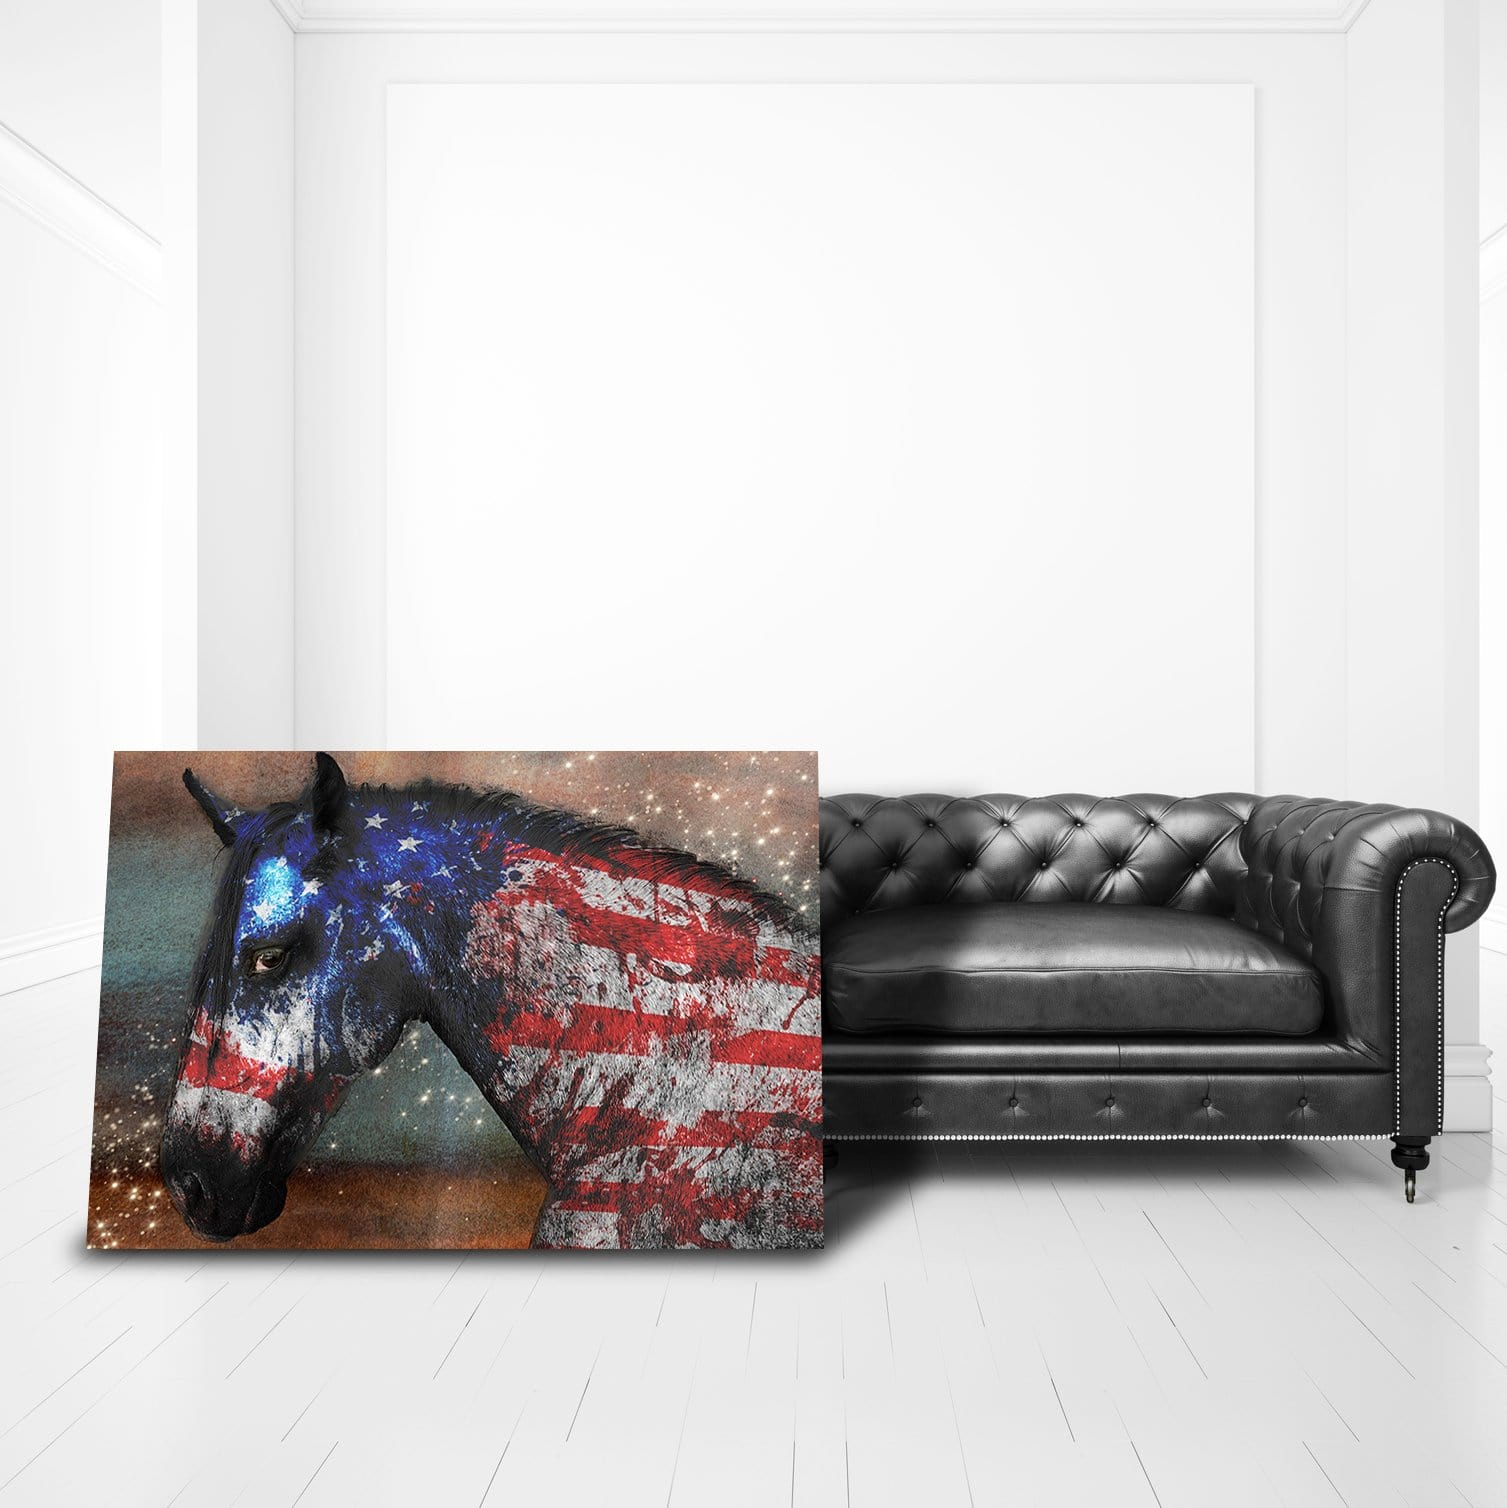 American Horse - Framed Canvas Painting Wall Art Office Decor, large modern pop artwork for home or office, Entrepreneur Inspirational and motivational Quotes on Canvas great for man cave or home. Perfect for Artwork Addicts. Made in USA, FREE Shipping.